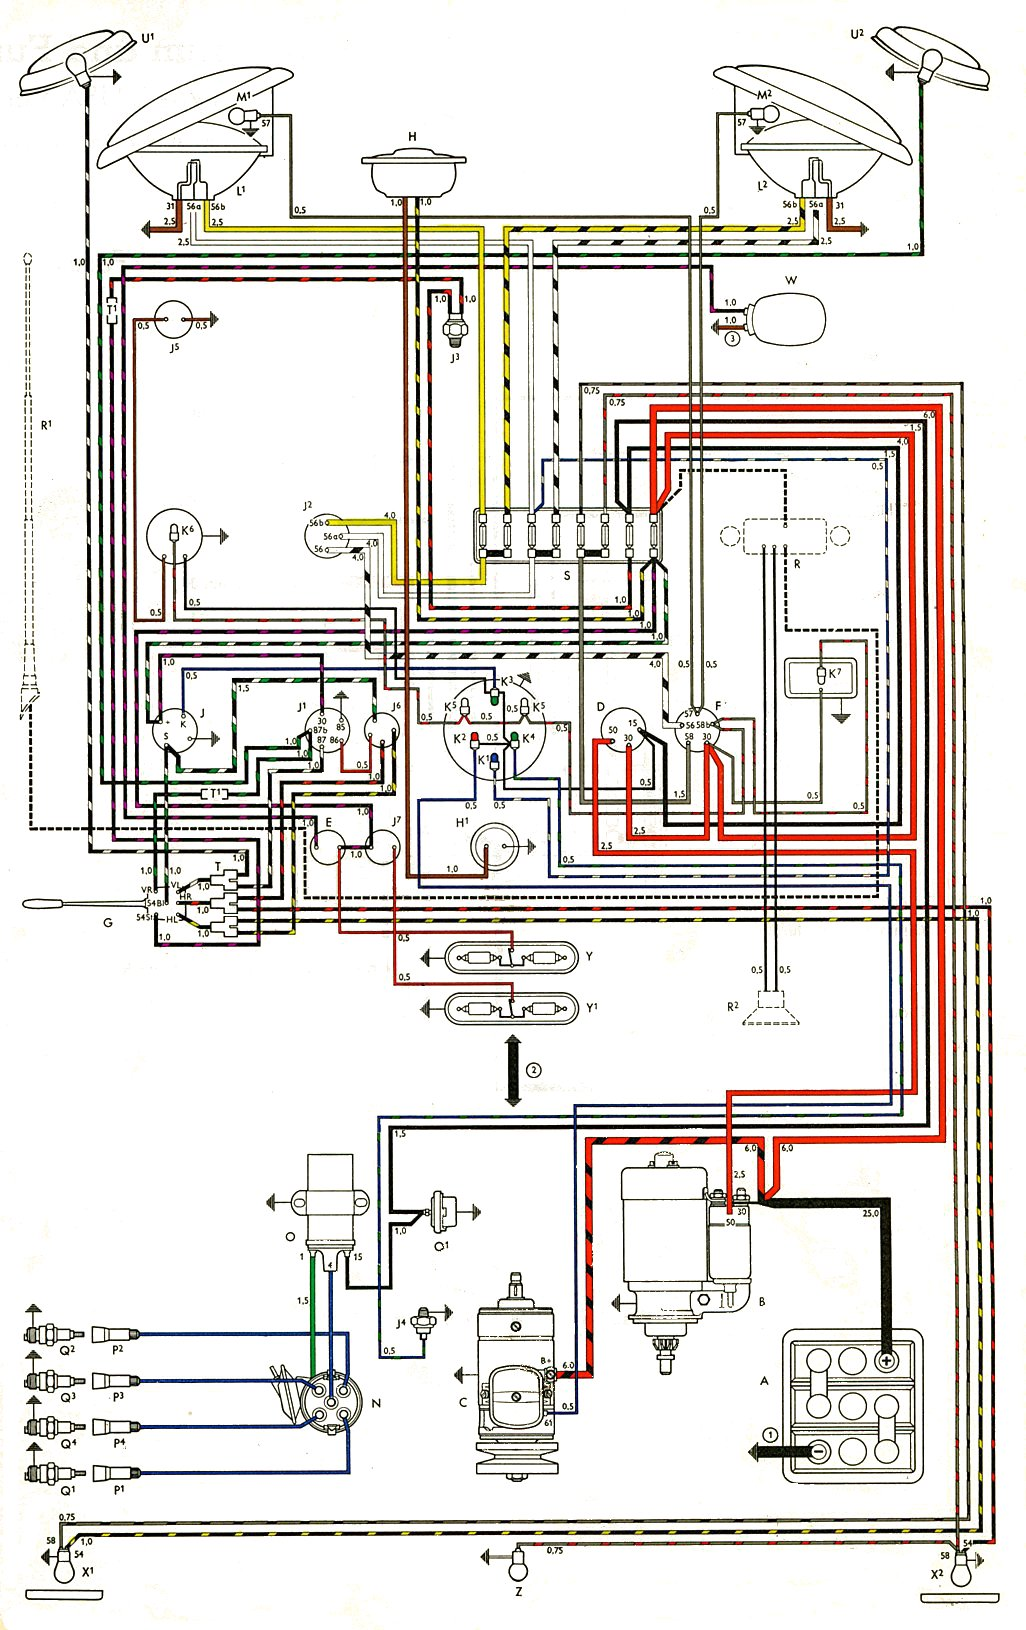 bus_63_USA thesamba com type 2 wiring diagrams vw wiring diagrams at webbmarketing.co